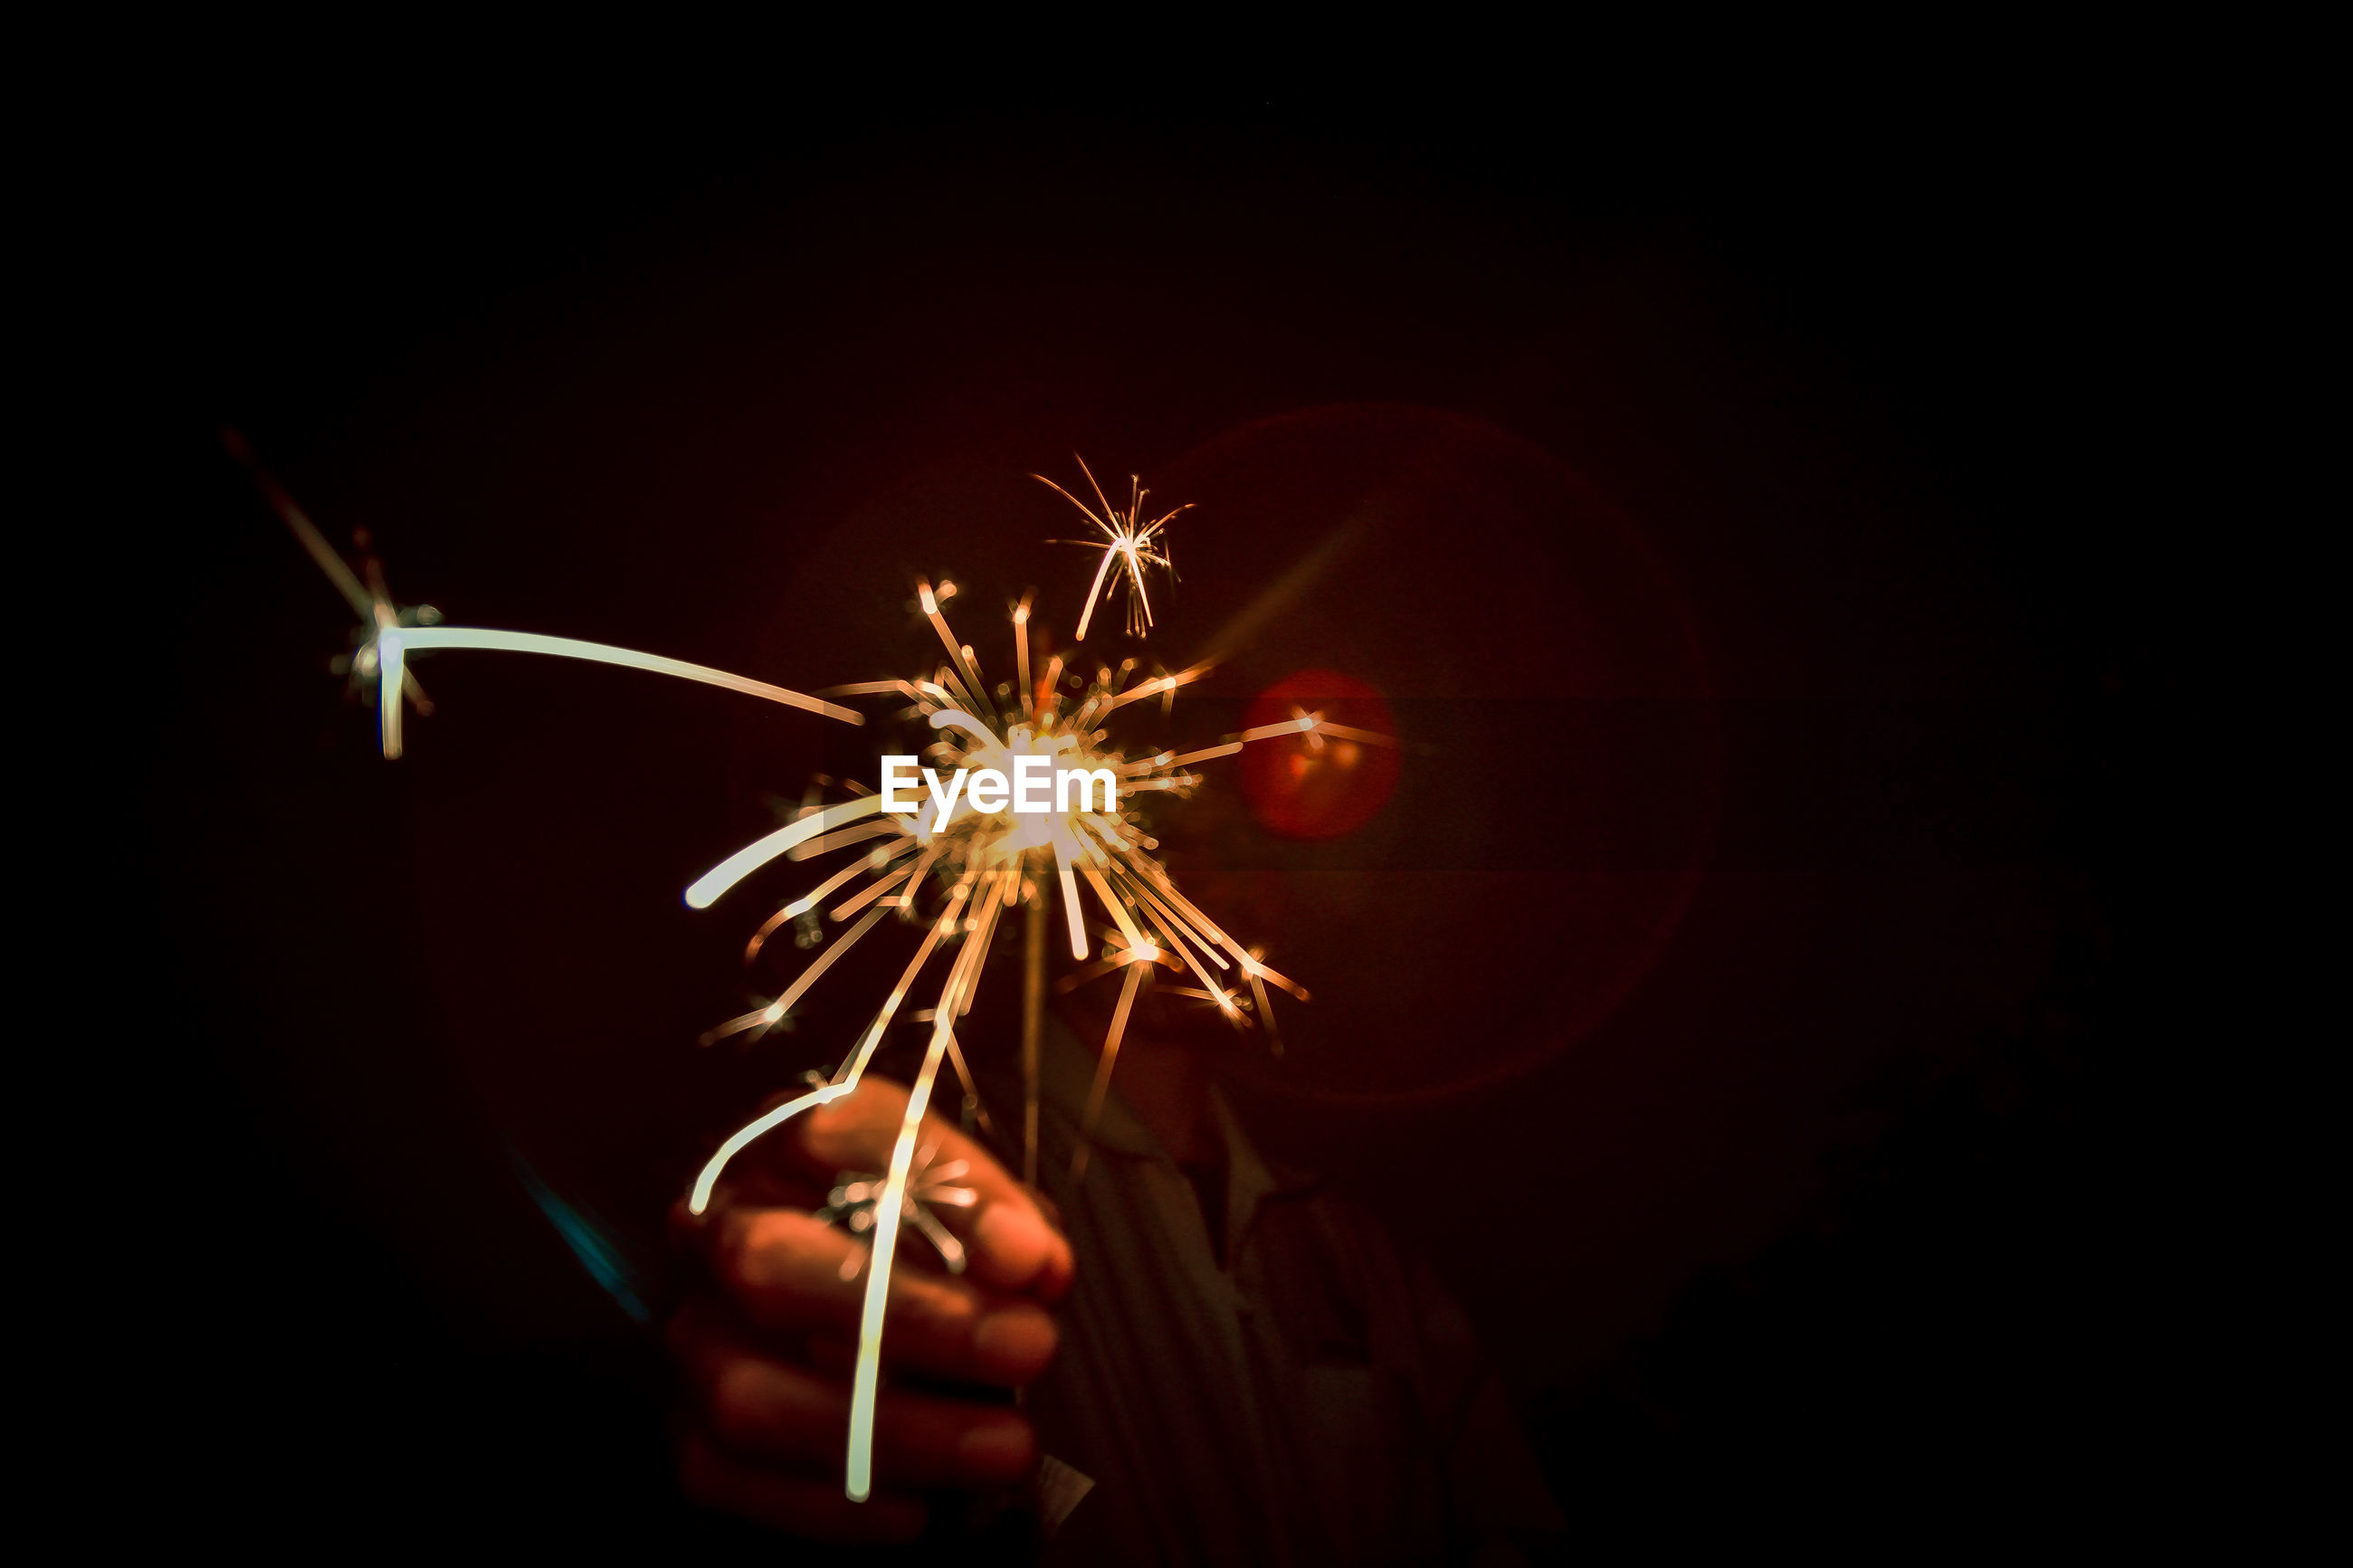 Person holding illuminated sparkler at night